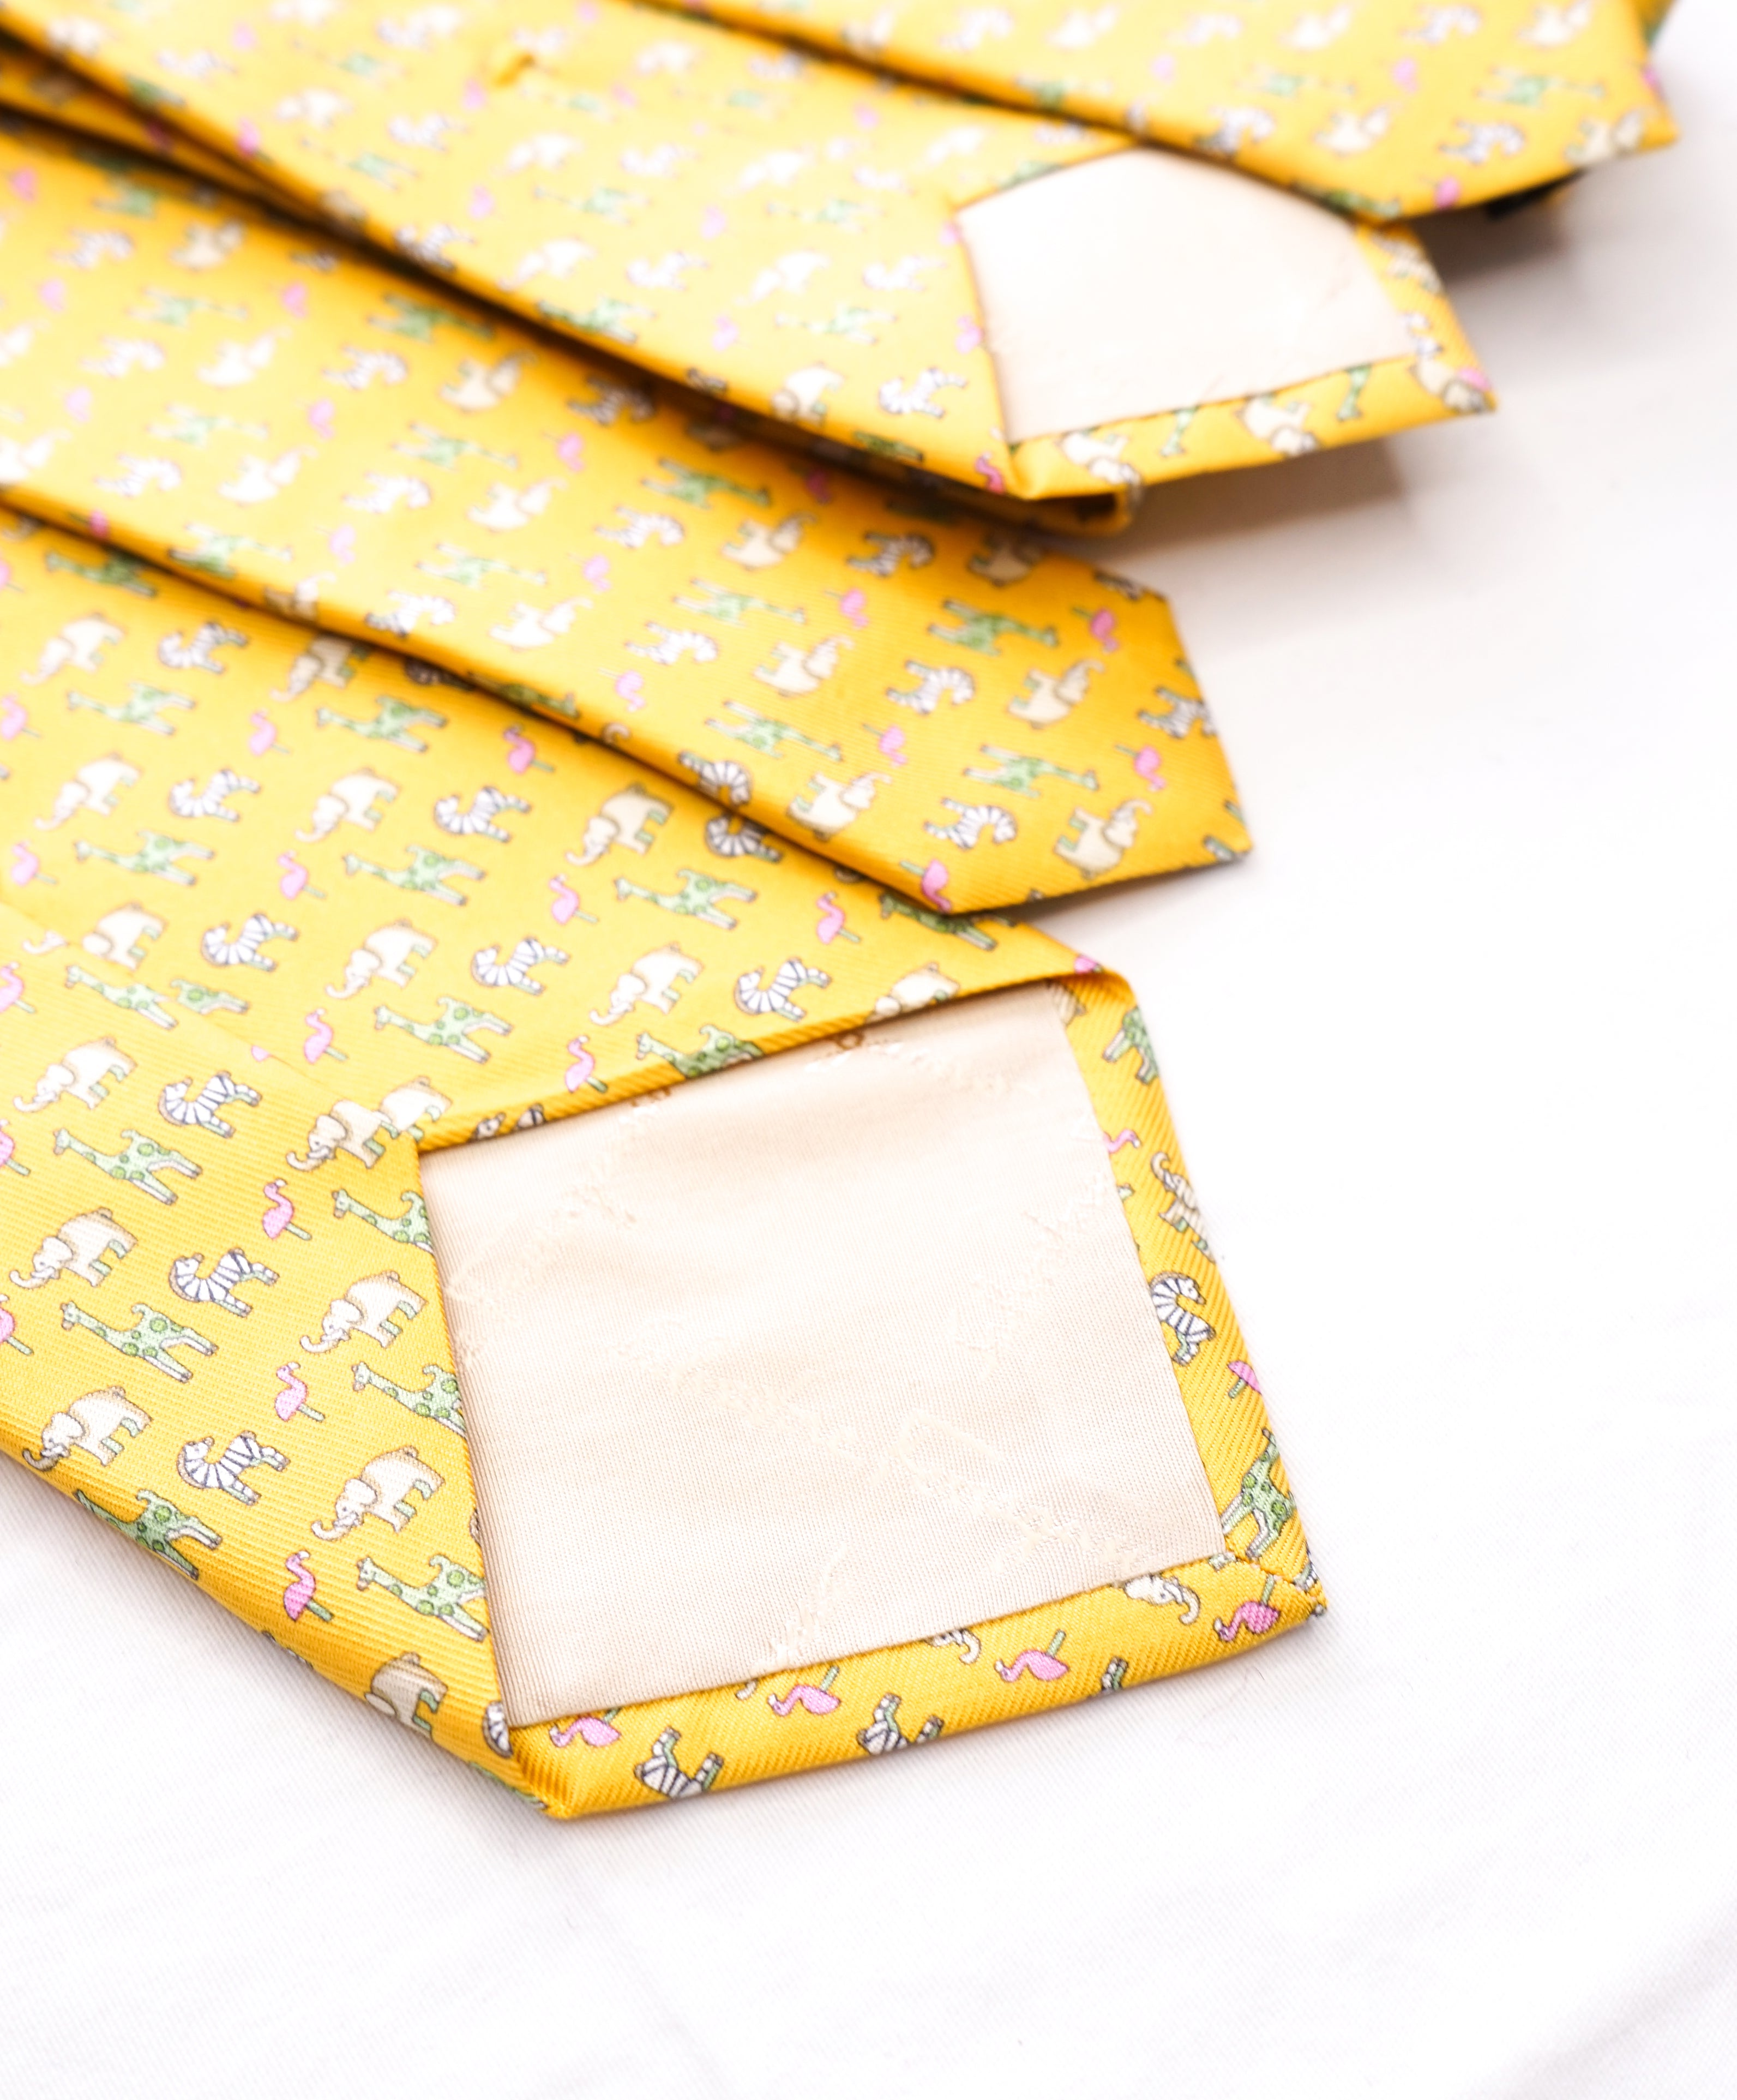 SALVATORE FERRAGAMO  - *Father & Son Set* Yellow Elephant Tie  -